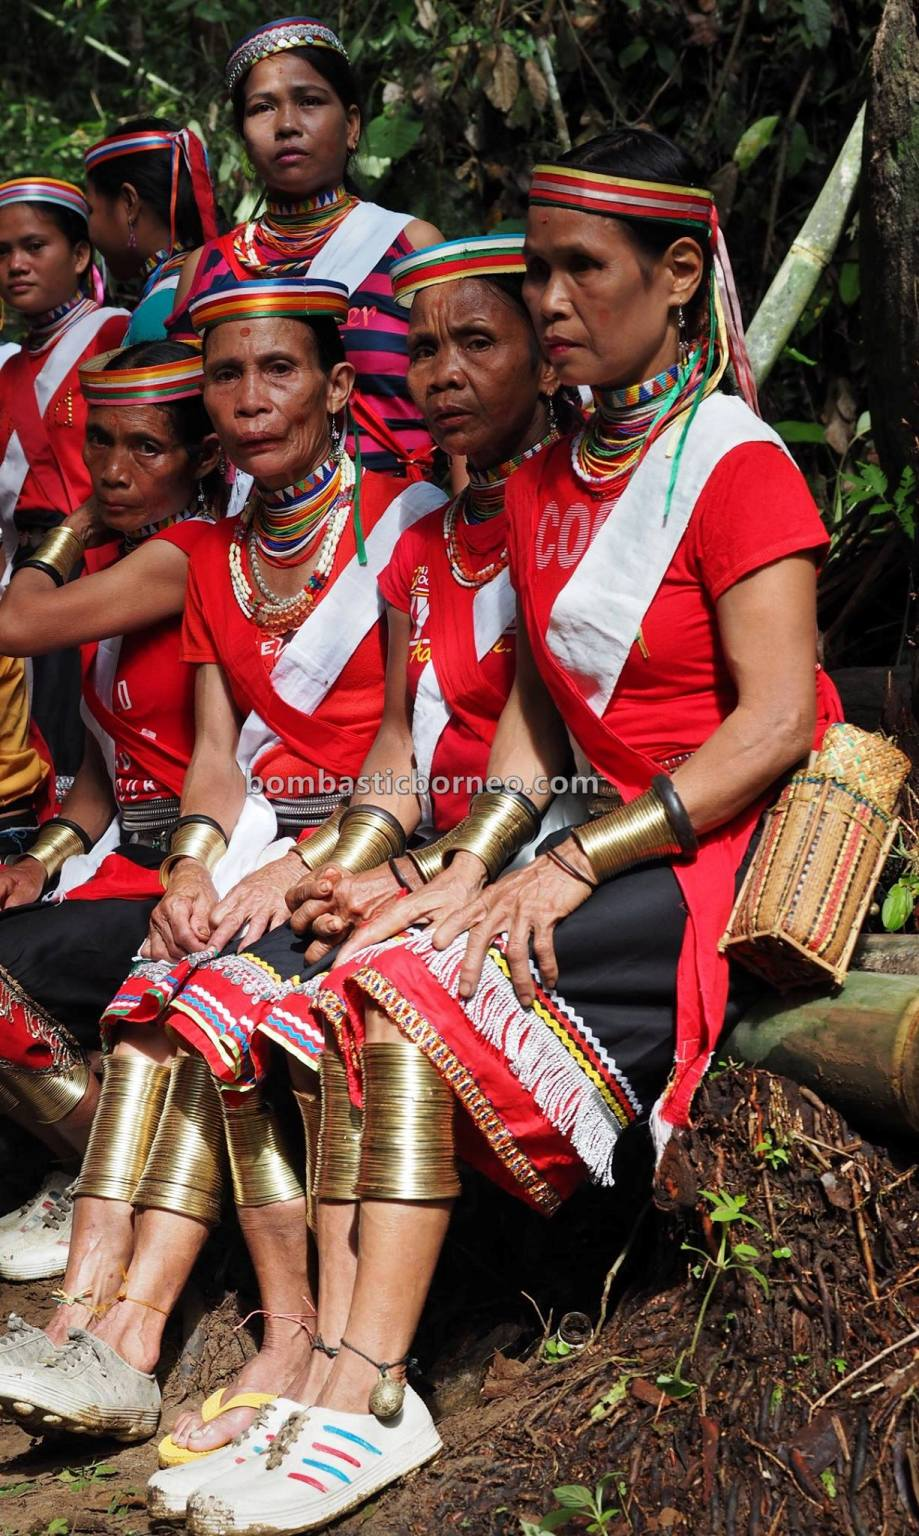 Gawai Serumpun, Dayak Bidayuh, indigenous, traditional, destination, Sarawak, authentic, culture, copper ring lady, Ethnic, native, Tourism, travel guide, trans border, 婆罗洲传统达雅文化, 砂拉越比达友族铜环女,